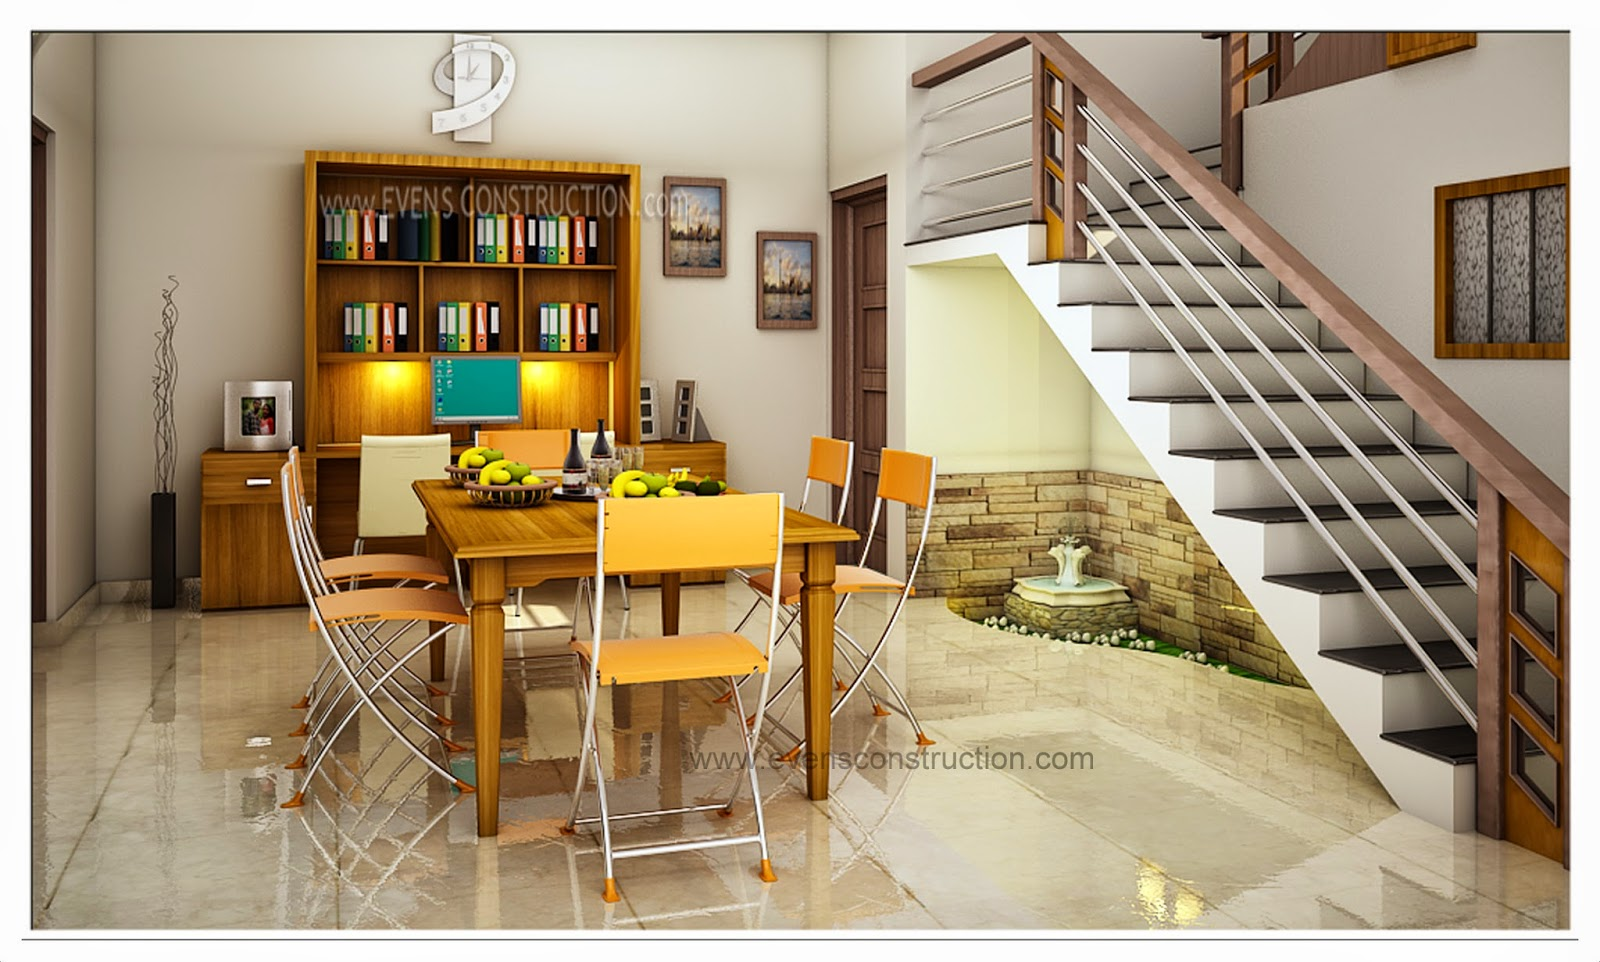 Evens construction pvt ltd beautiful interior design for for House interior design dining room